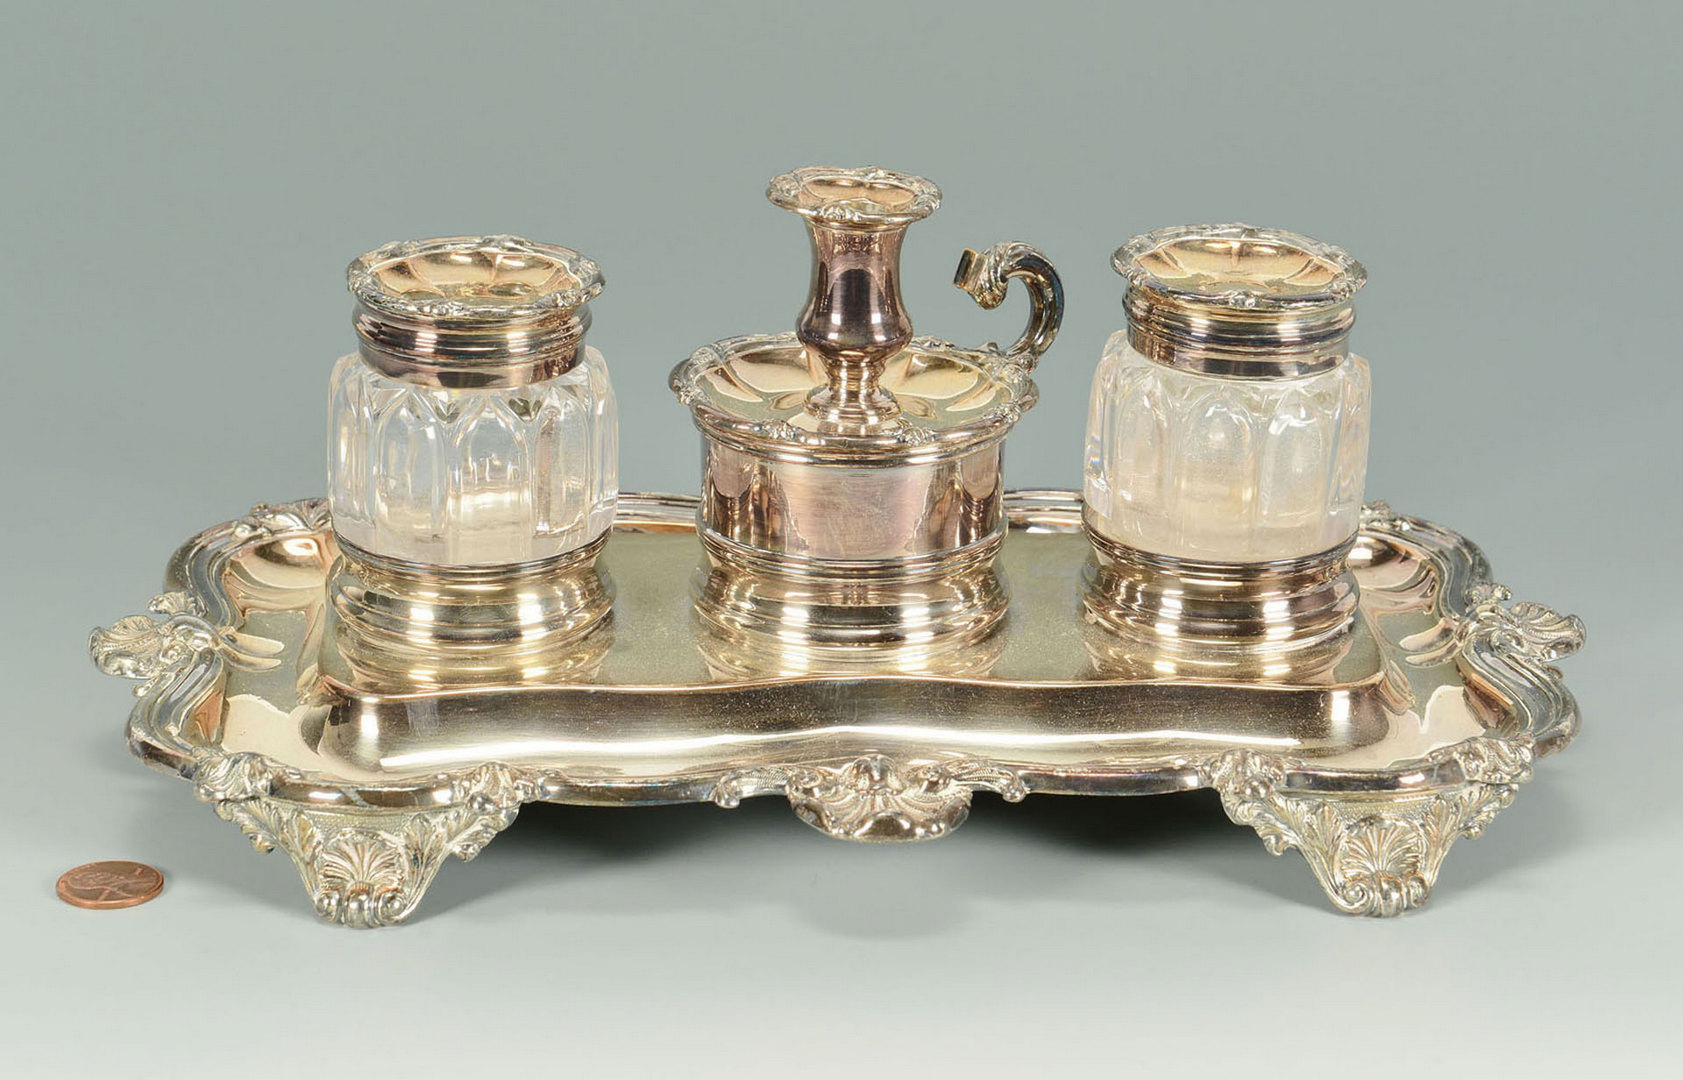 Lot 596: Old Sheffield Standish, Matthew Boulton